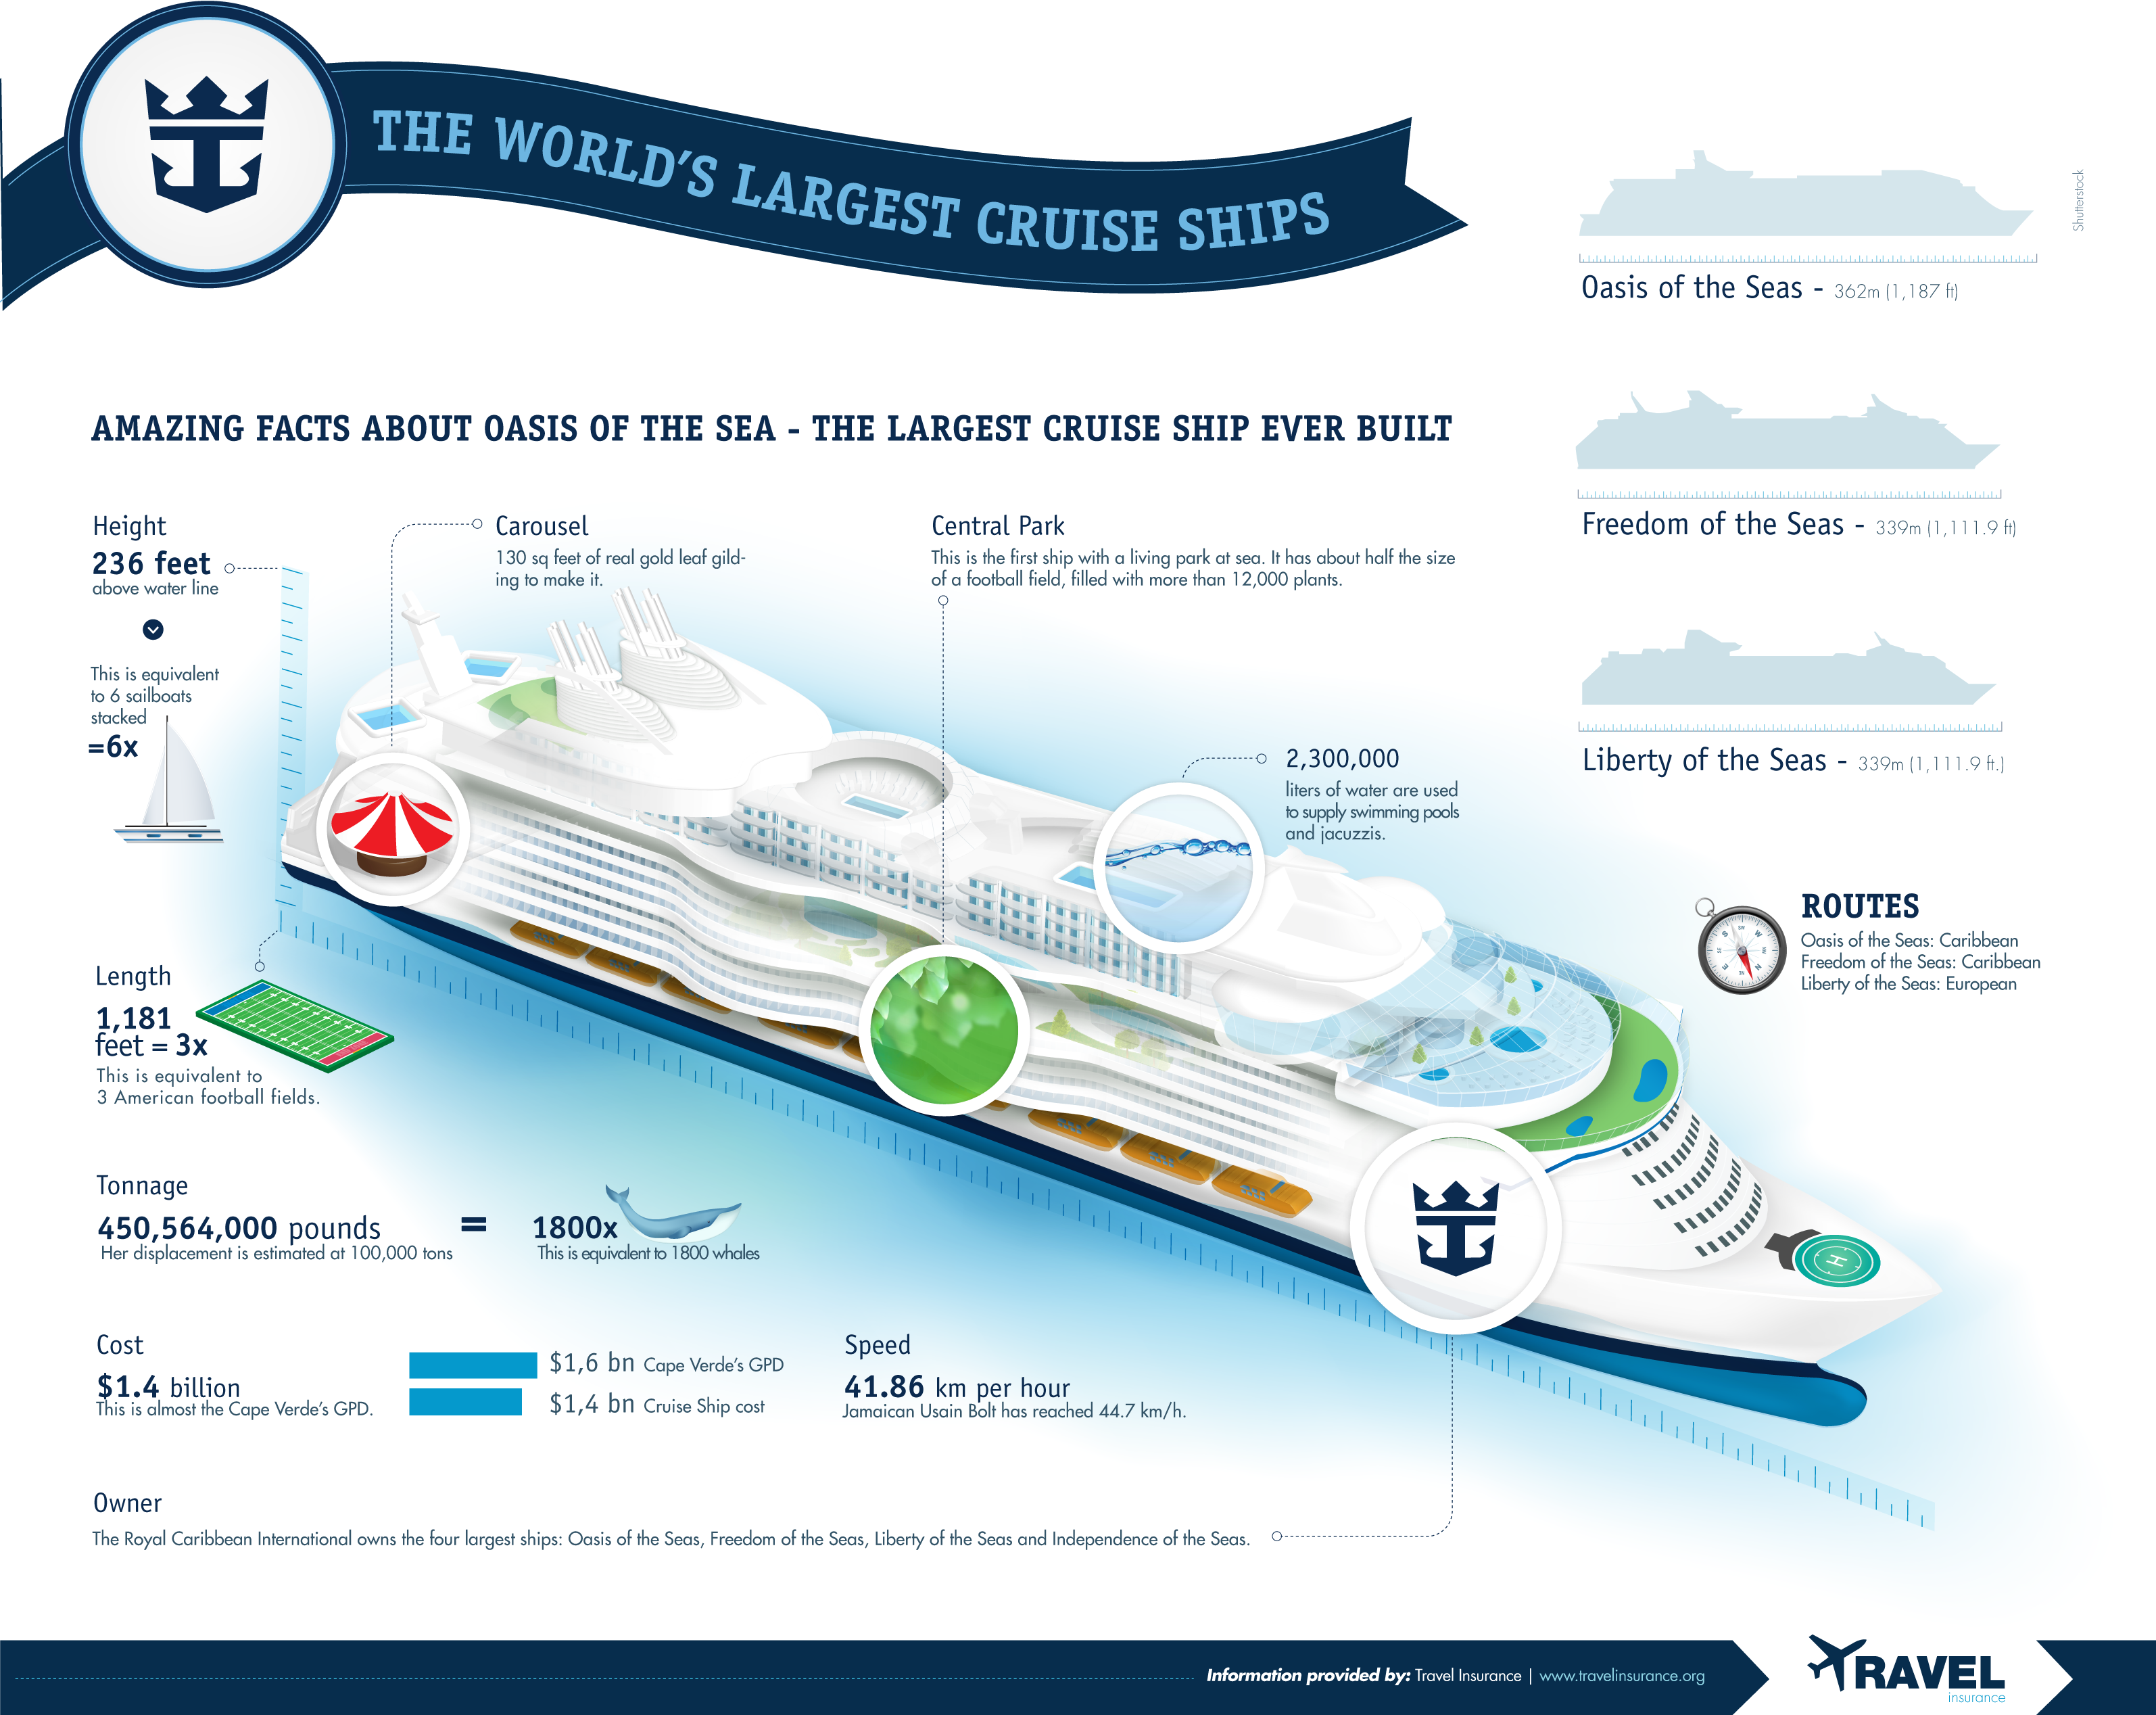 The Worlds Largest Cruise Ships INFOGRAPHIC Infographic List - Biggest cruise ships list